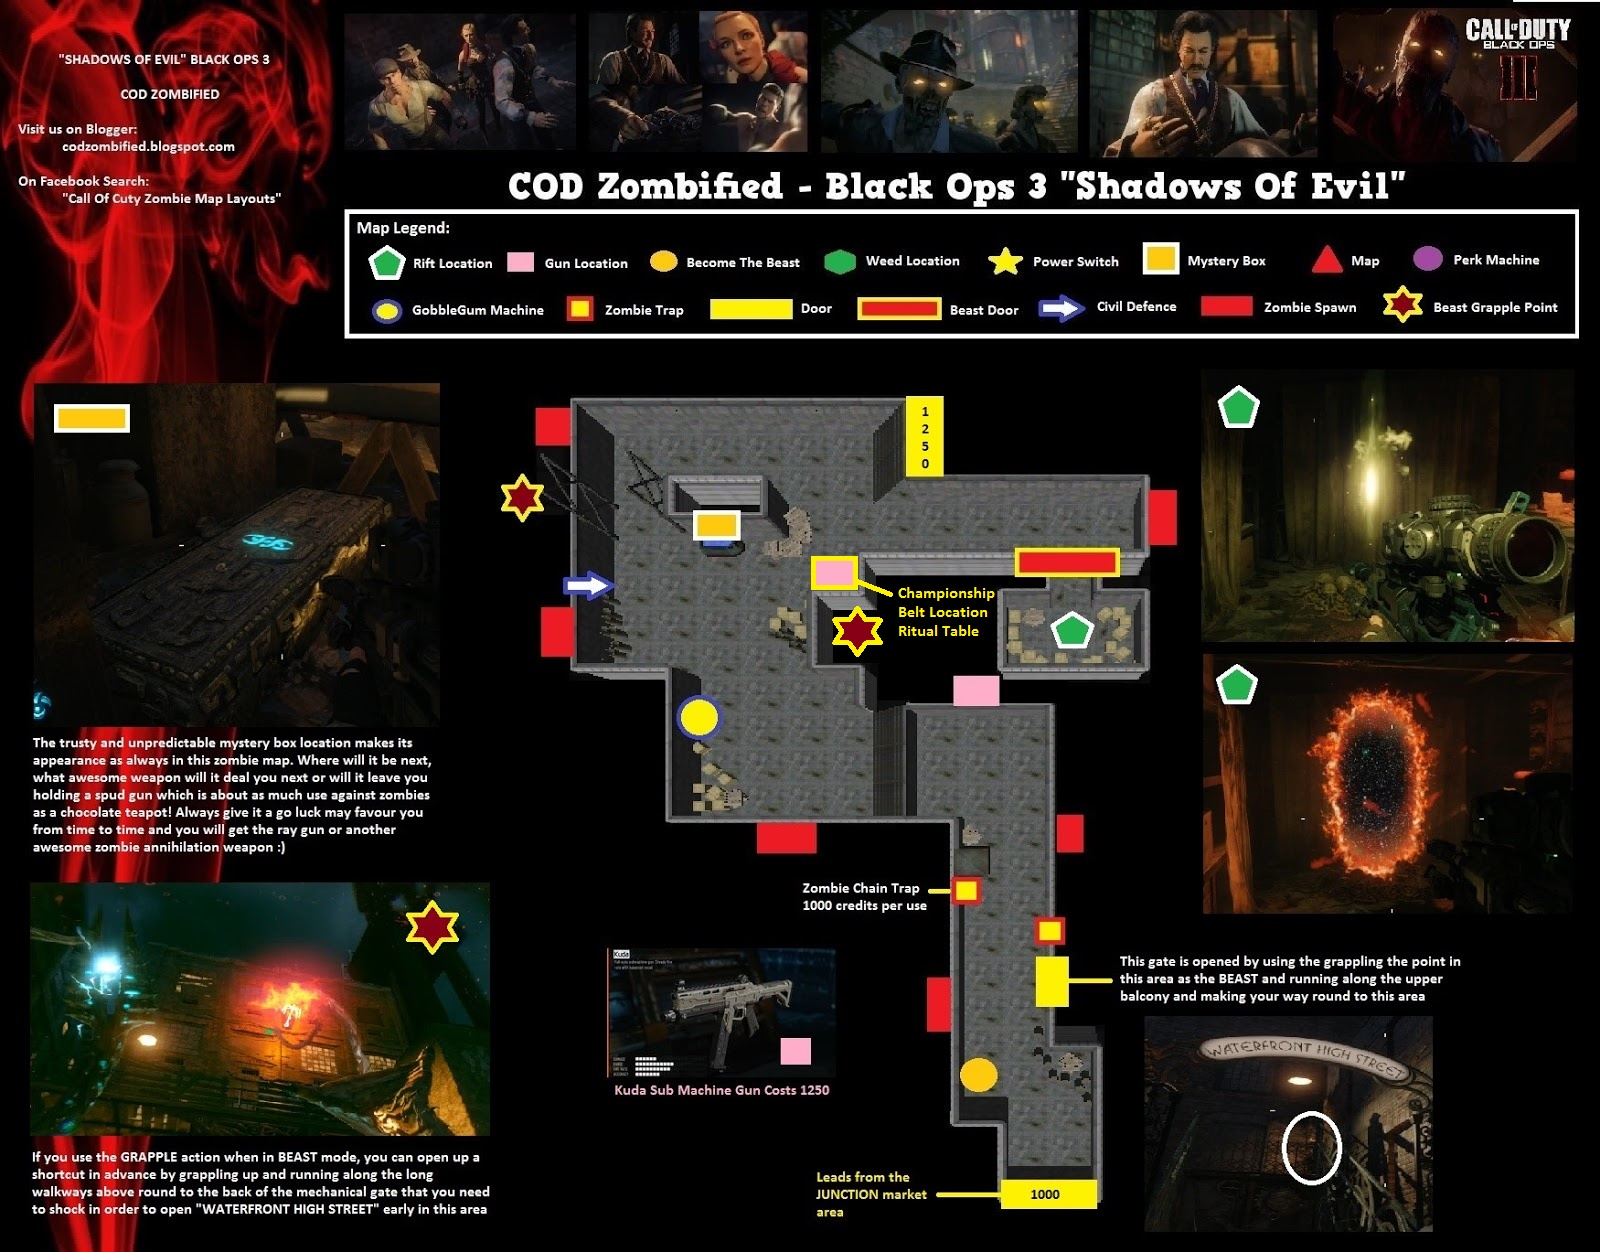 Call of duty black ops 3 free zombie maps Call Of Duty Black Ops All Zombie Maps on